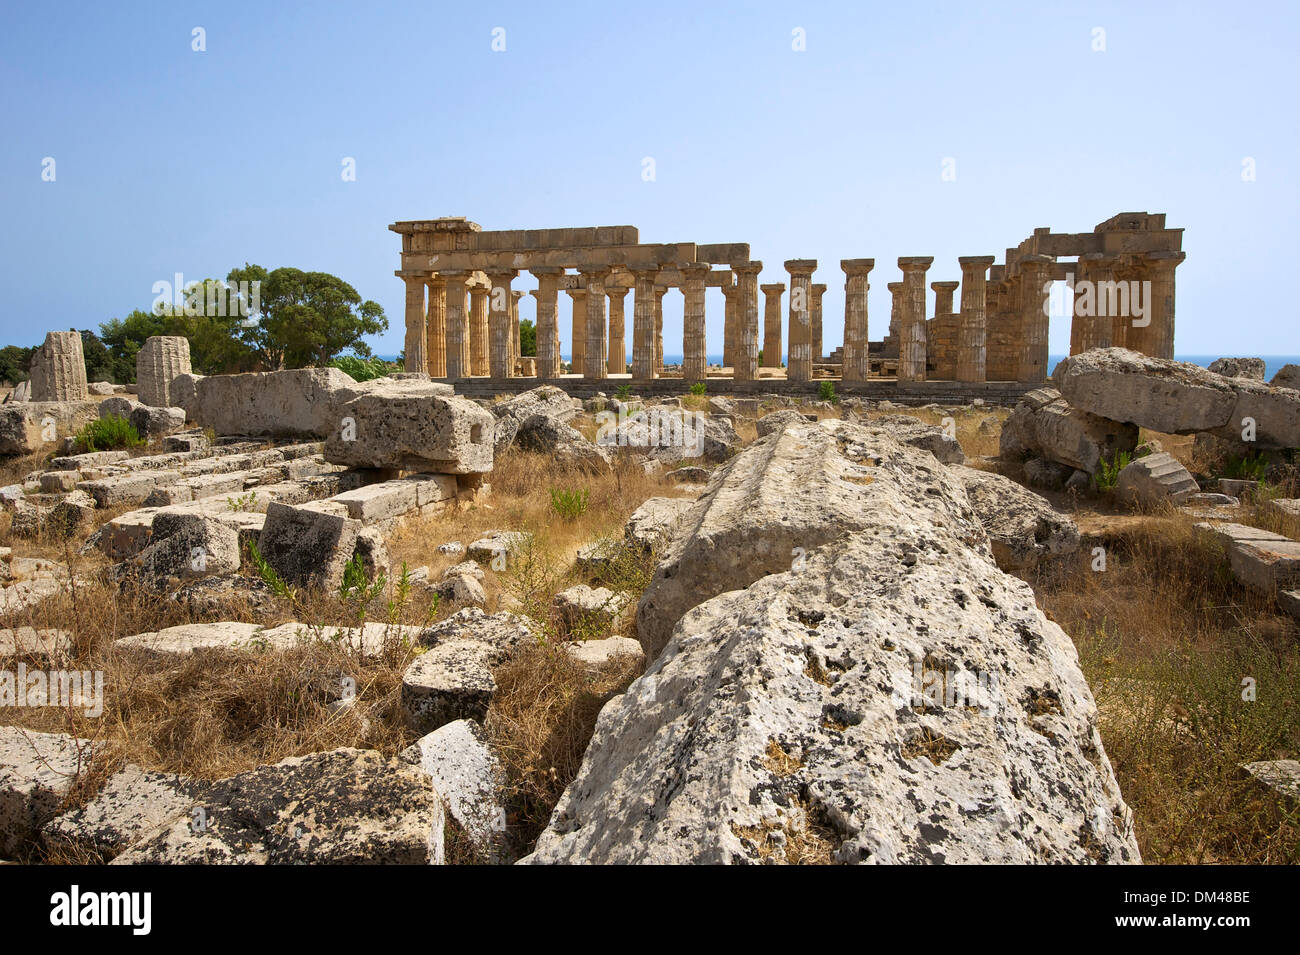 Sicily Italy South Italy Europe island temple of Hera Selinunt temple architecture building construction history historical - Stock Image